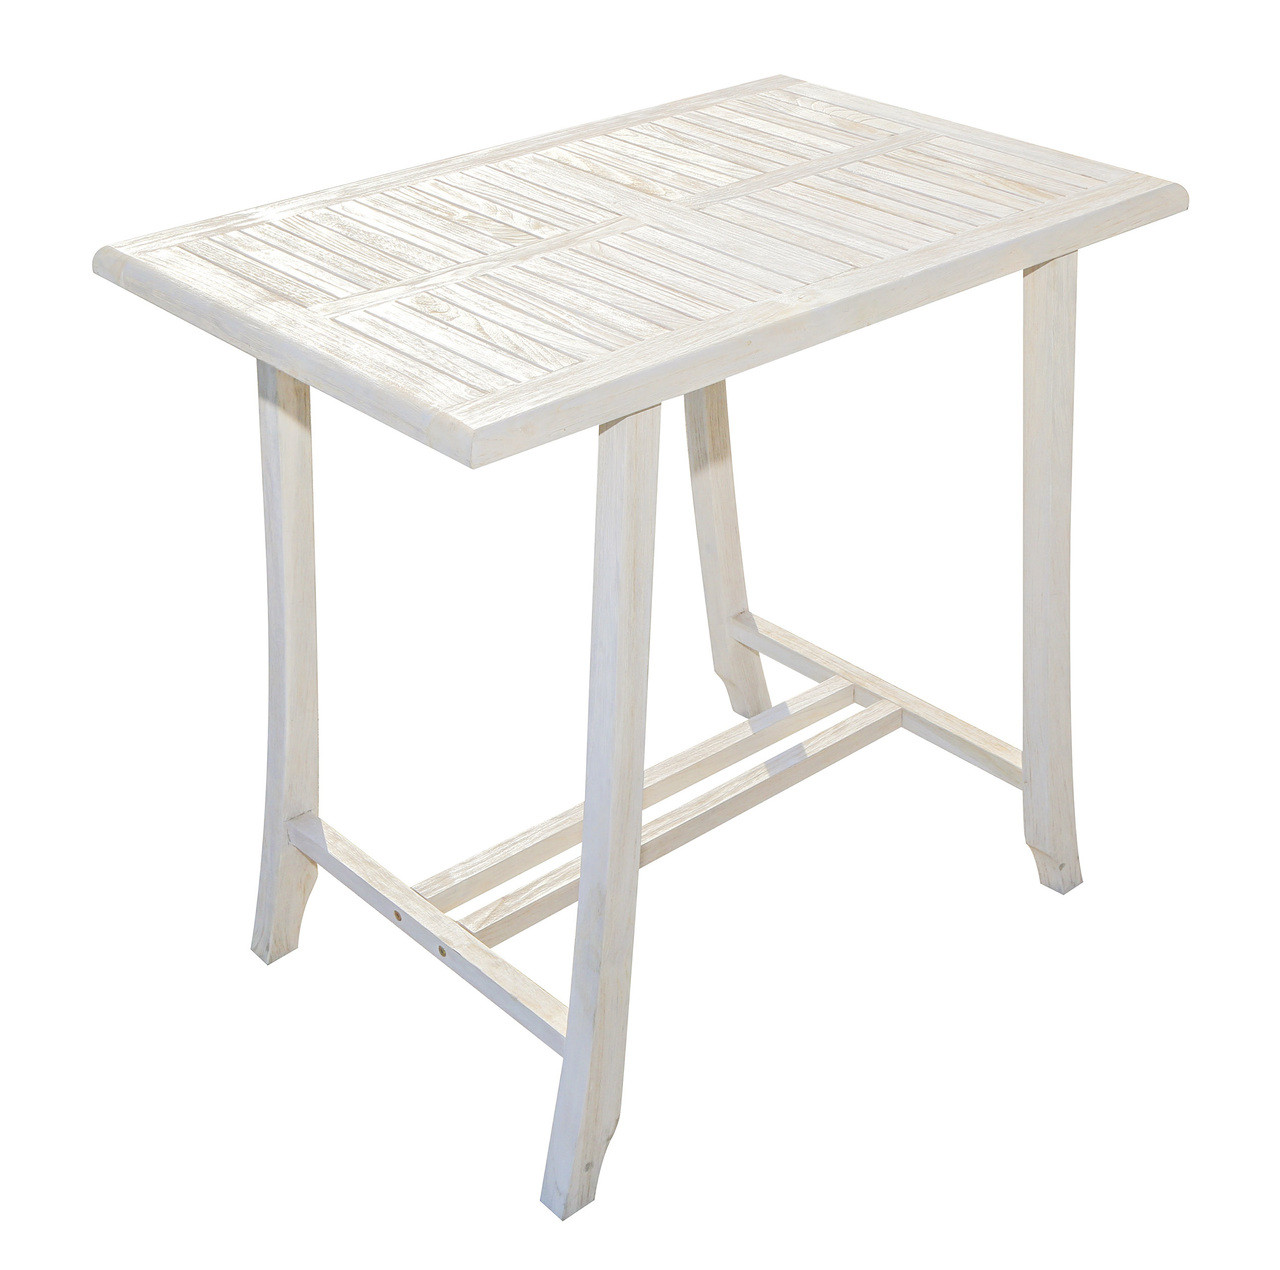 "CoastalVogue Satori 35"" x 23.5"" x 34"" Teak Wood Table in Coastal Driftwood Finish"